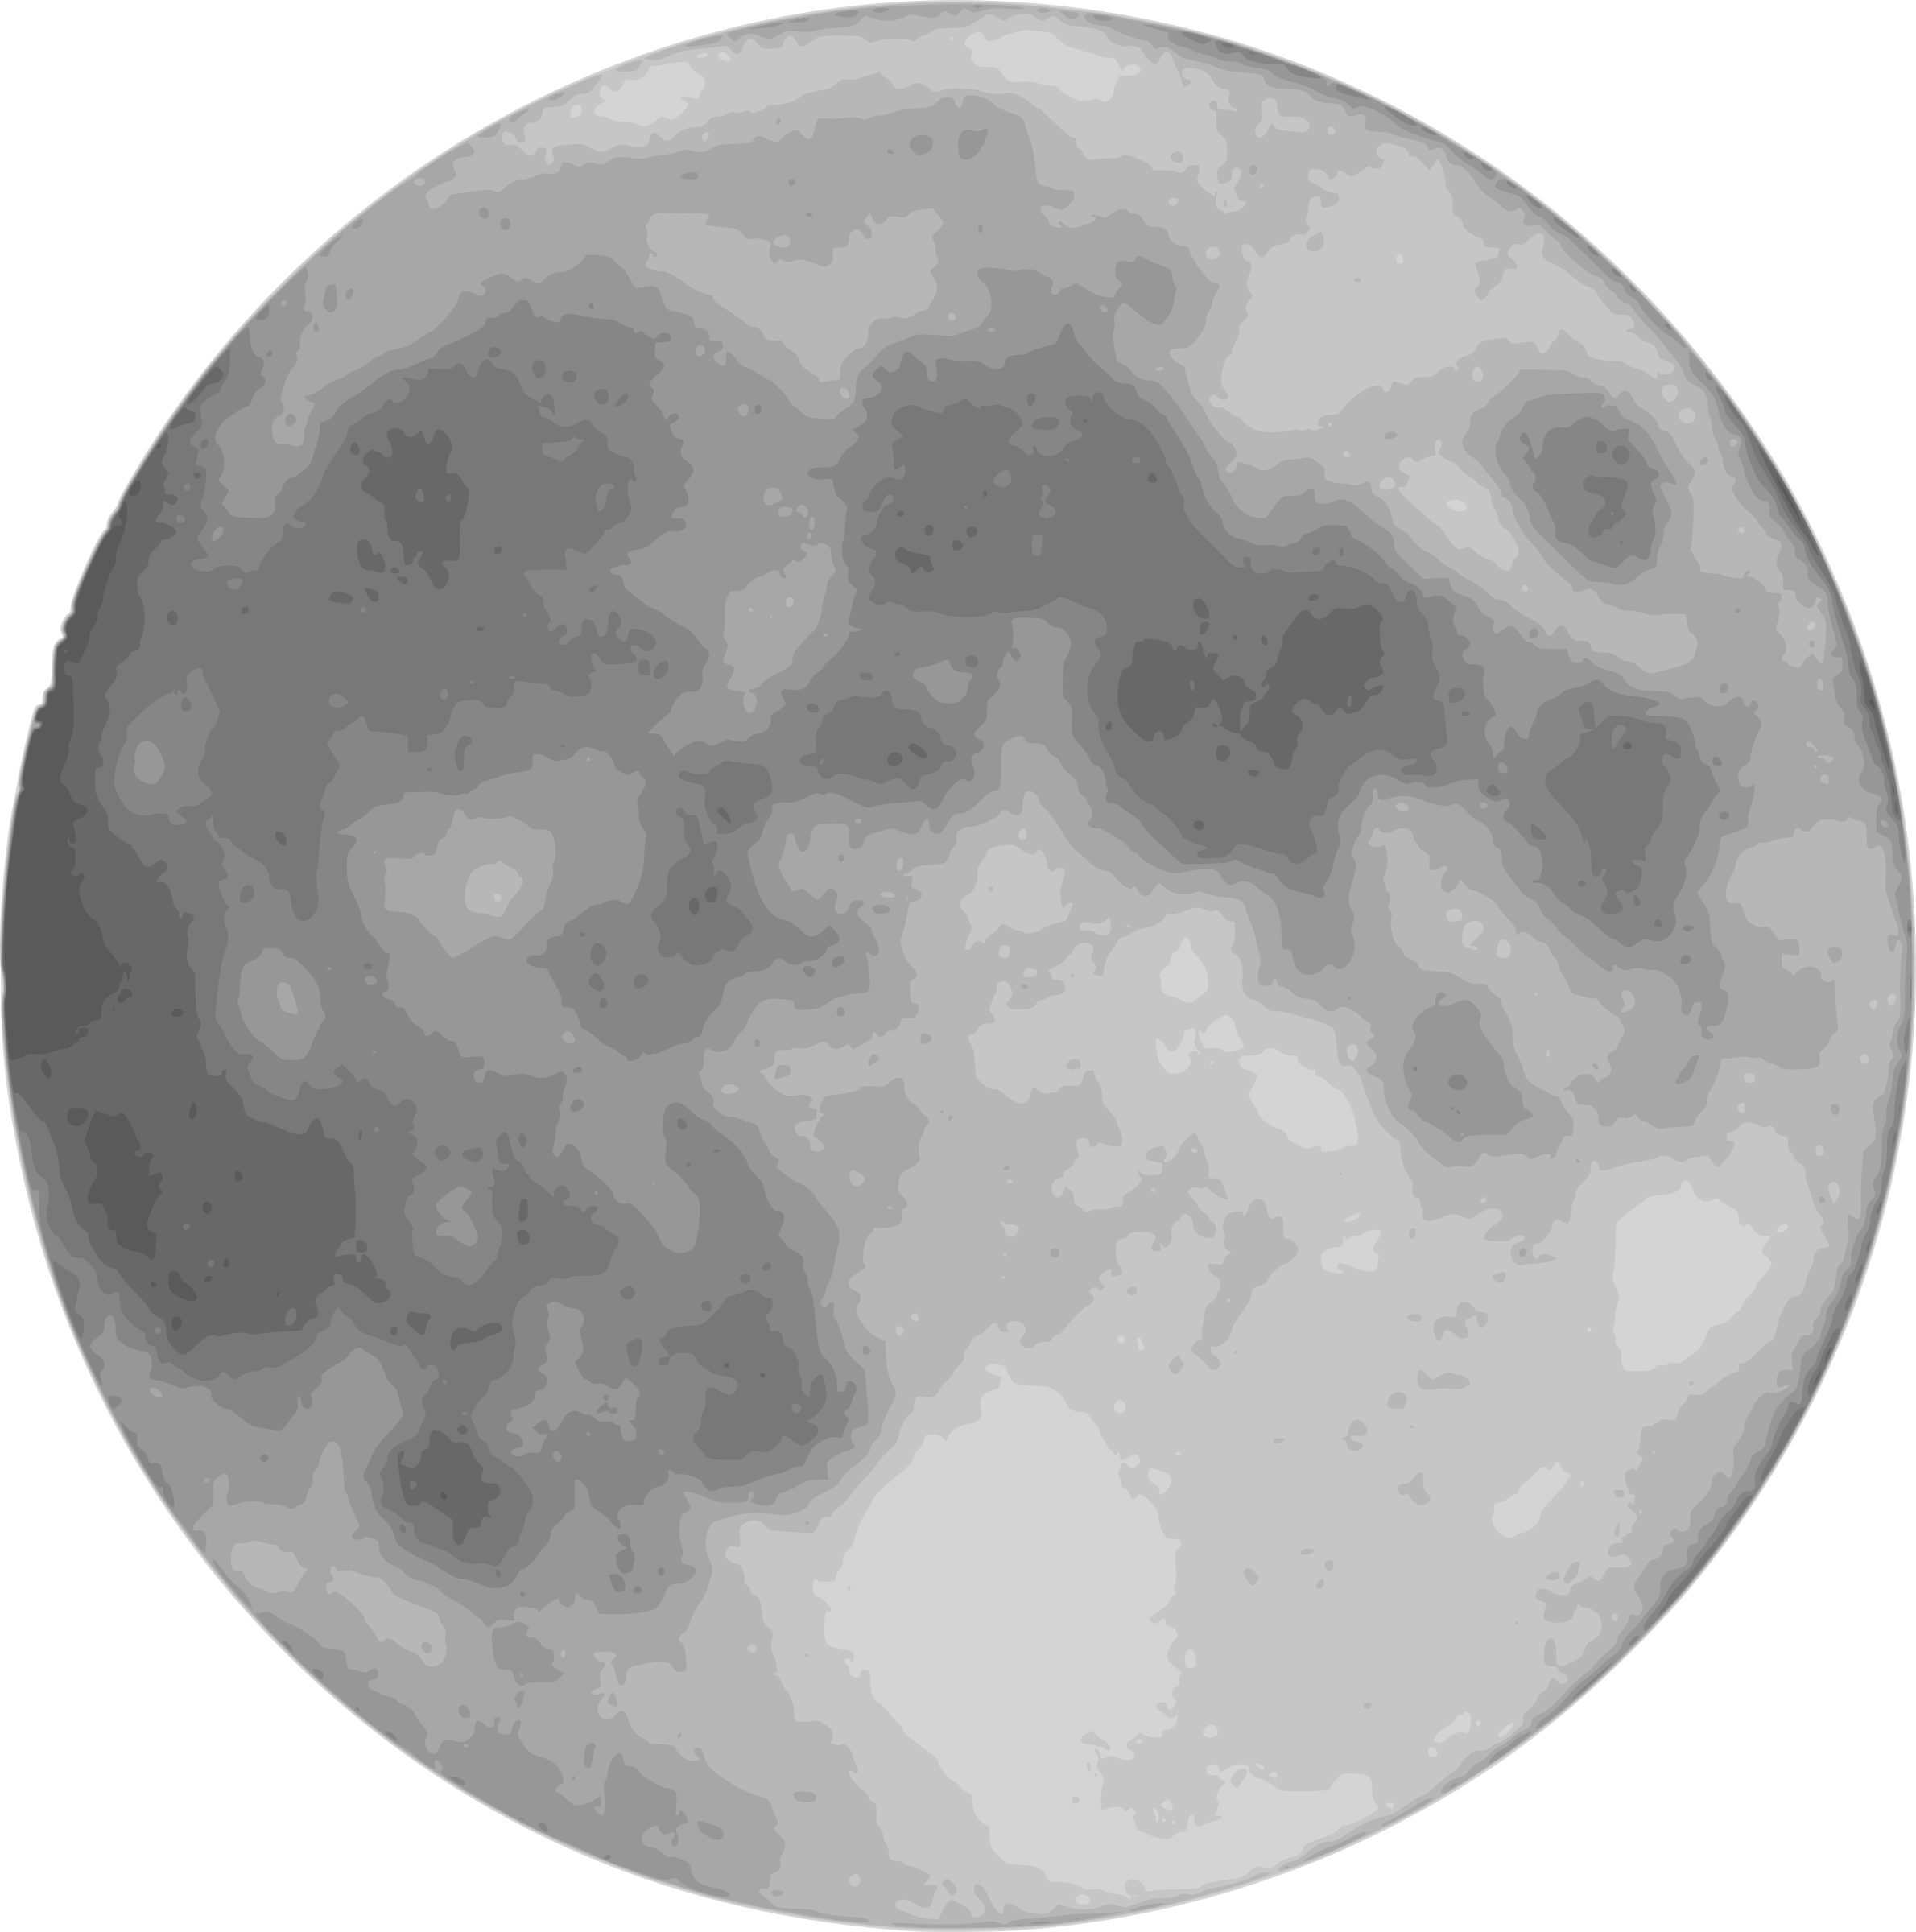 Full png transparent this. Clipart moon black and white